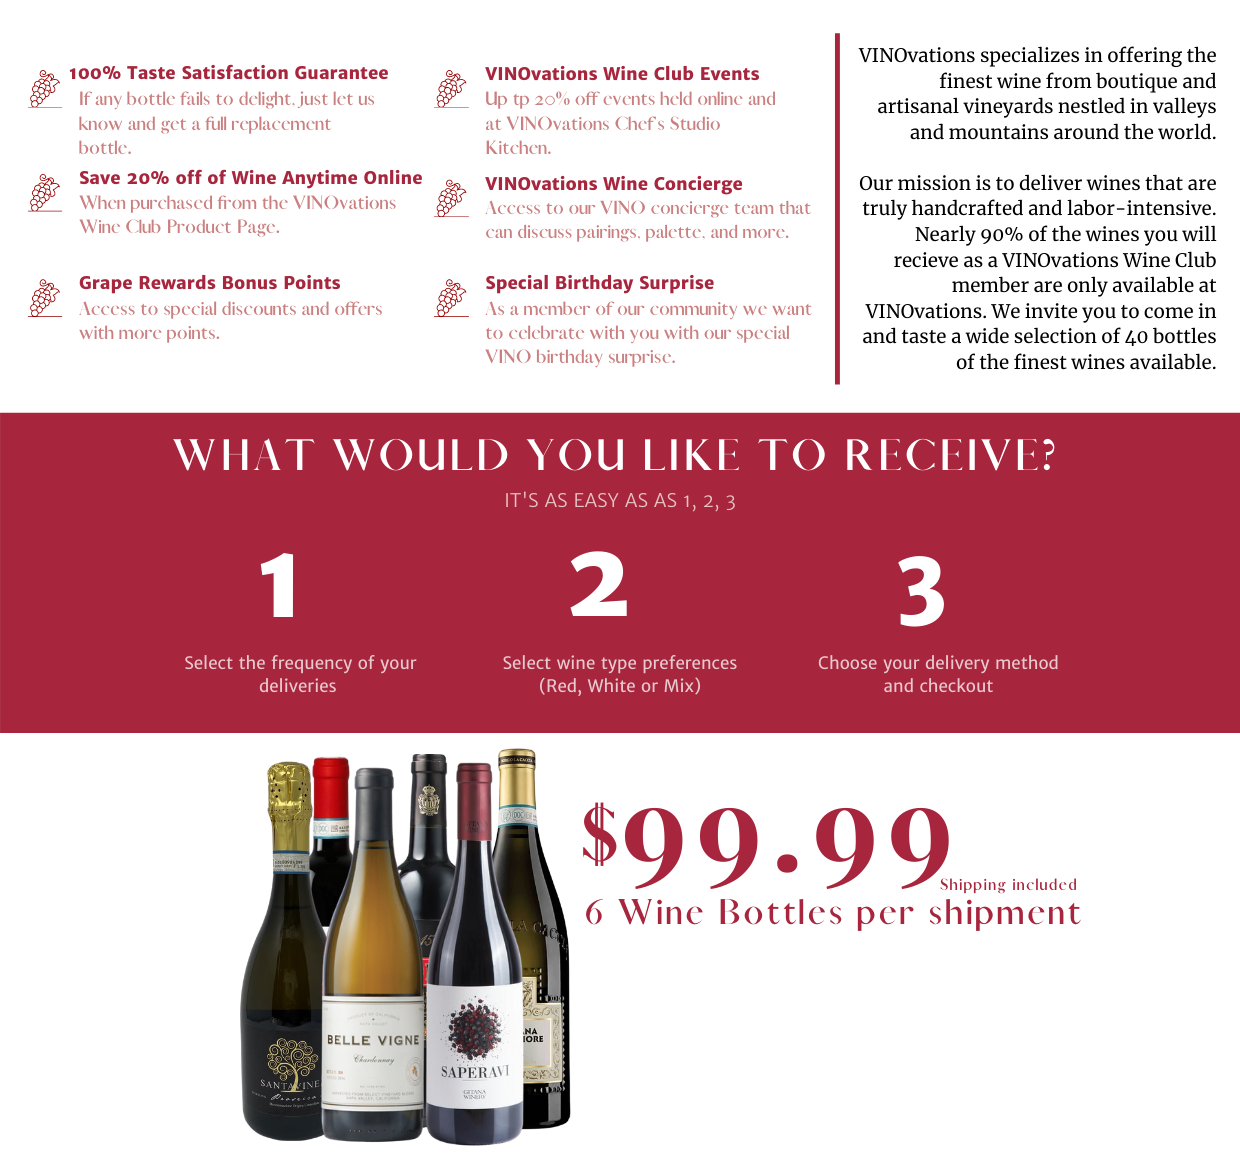 wine-club-info-graphic-4.png